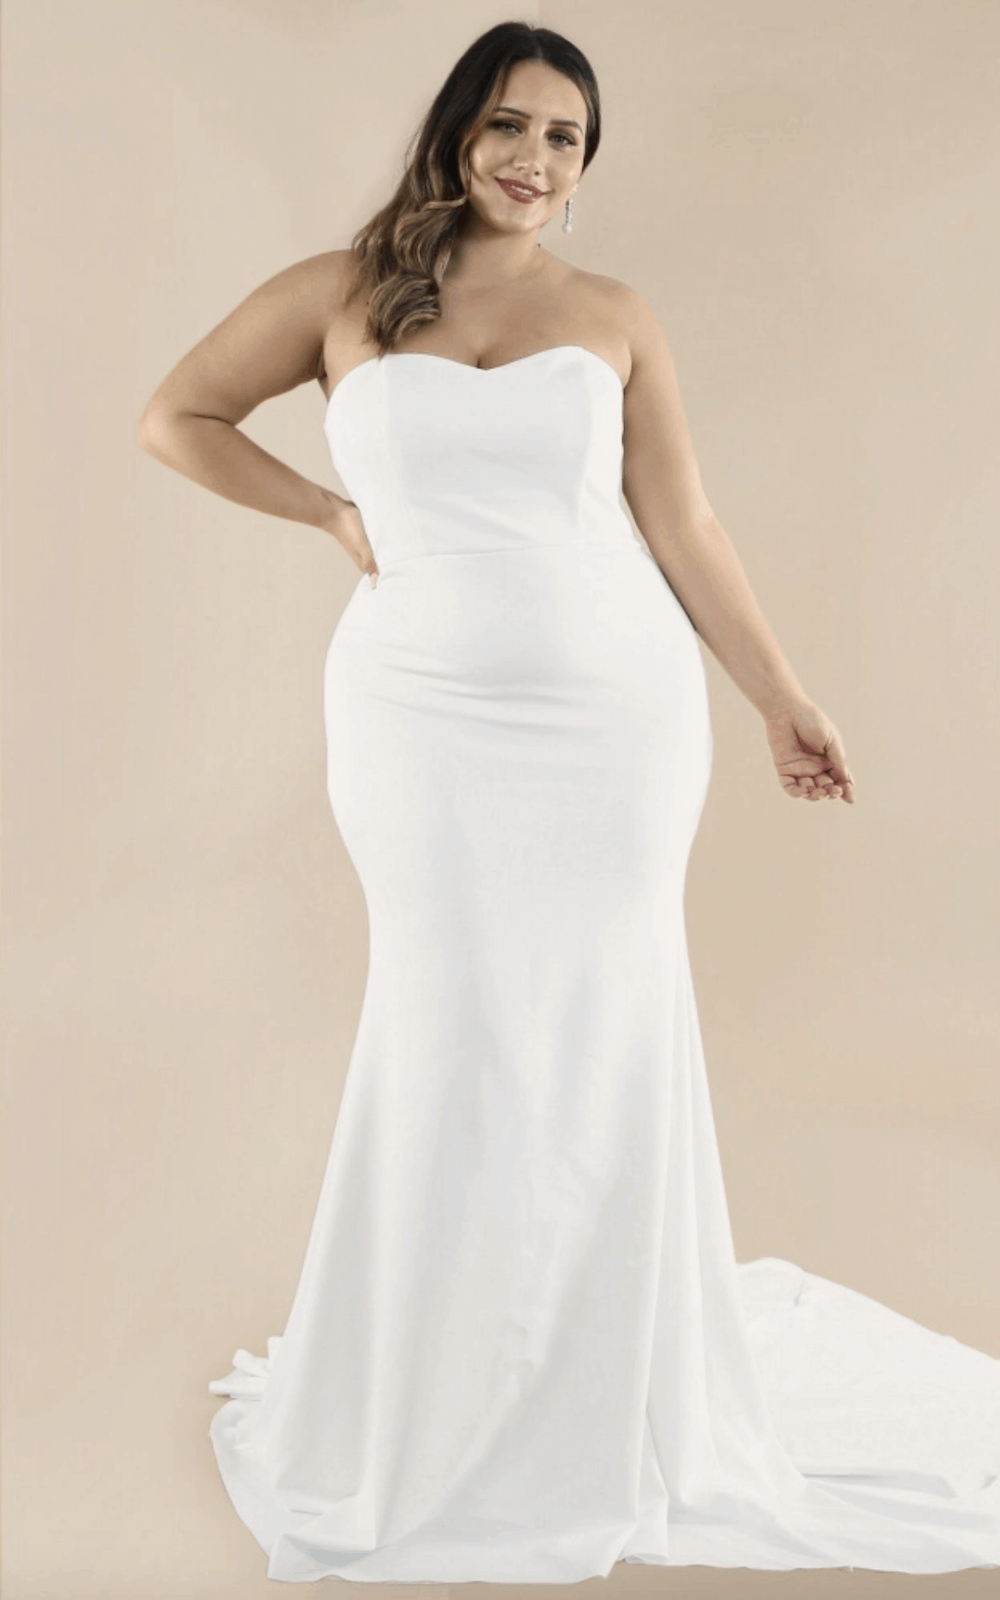 Plus Size Bridal Gowns And Wedding Dresses Perfect For Curvy